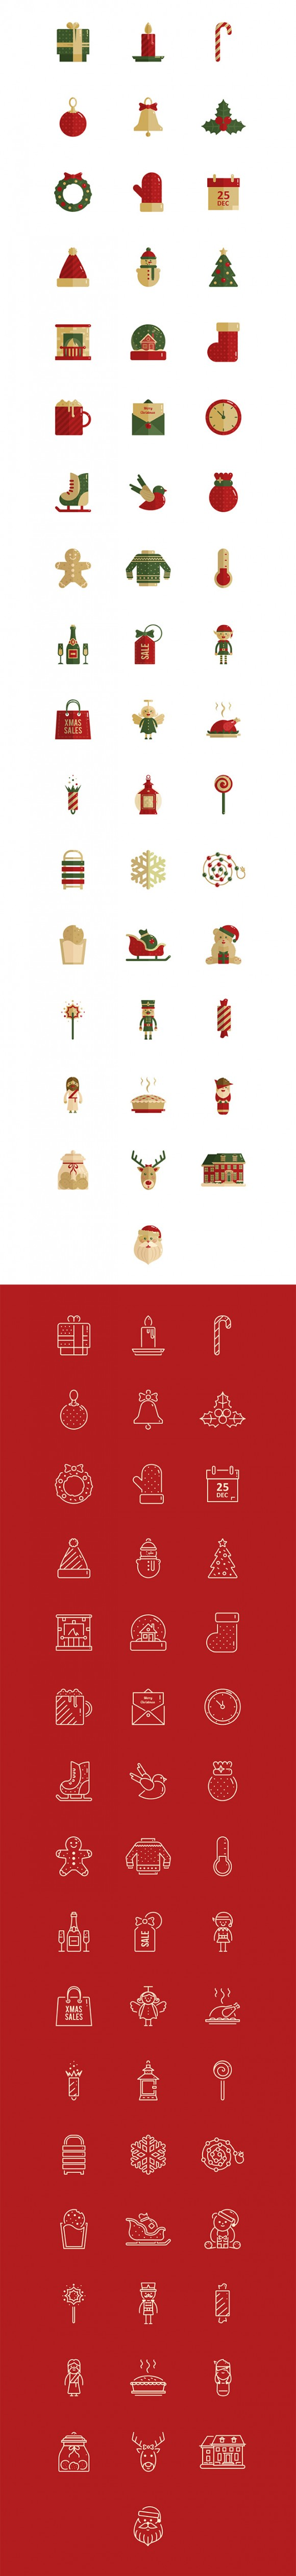 100 Christmas vector icons - Detailed image